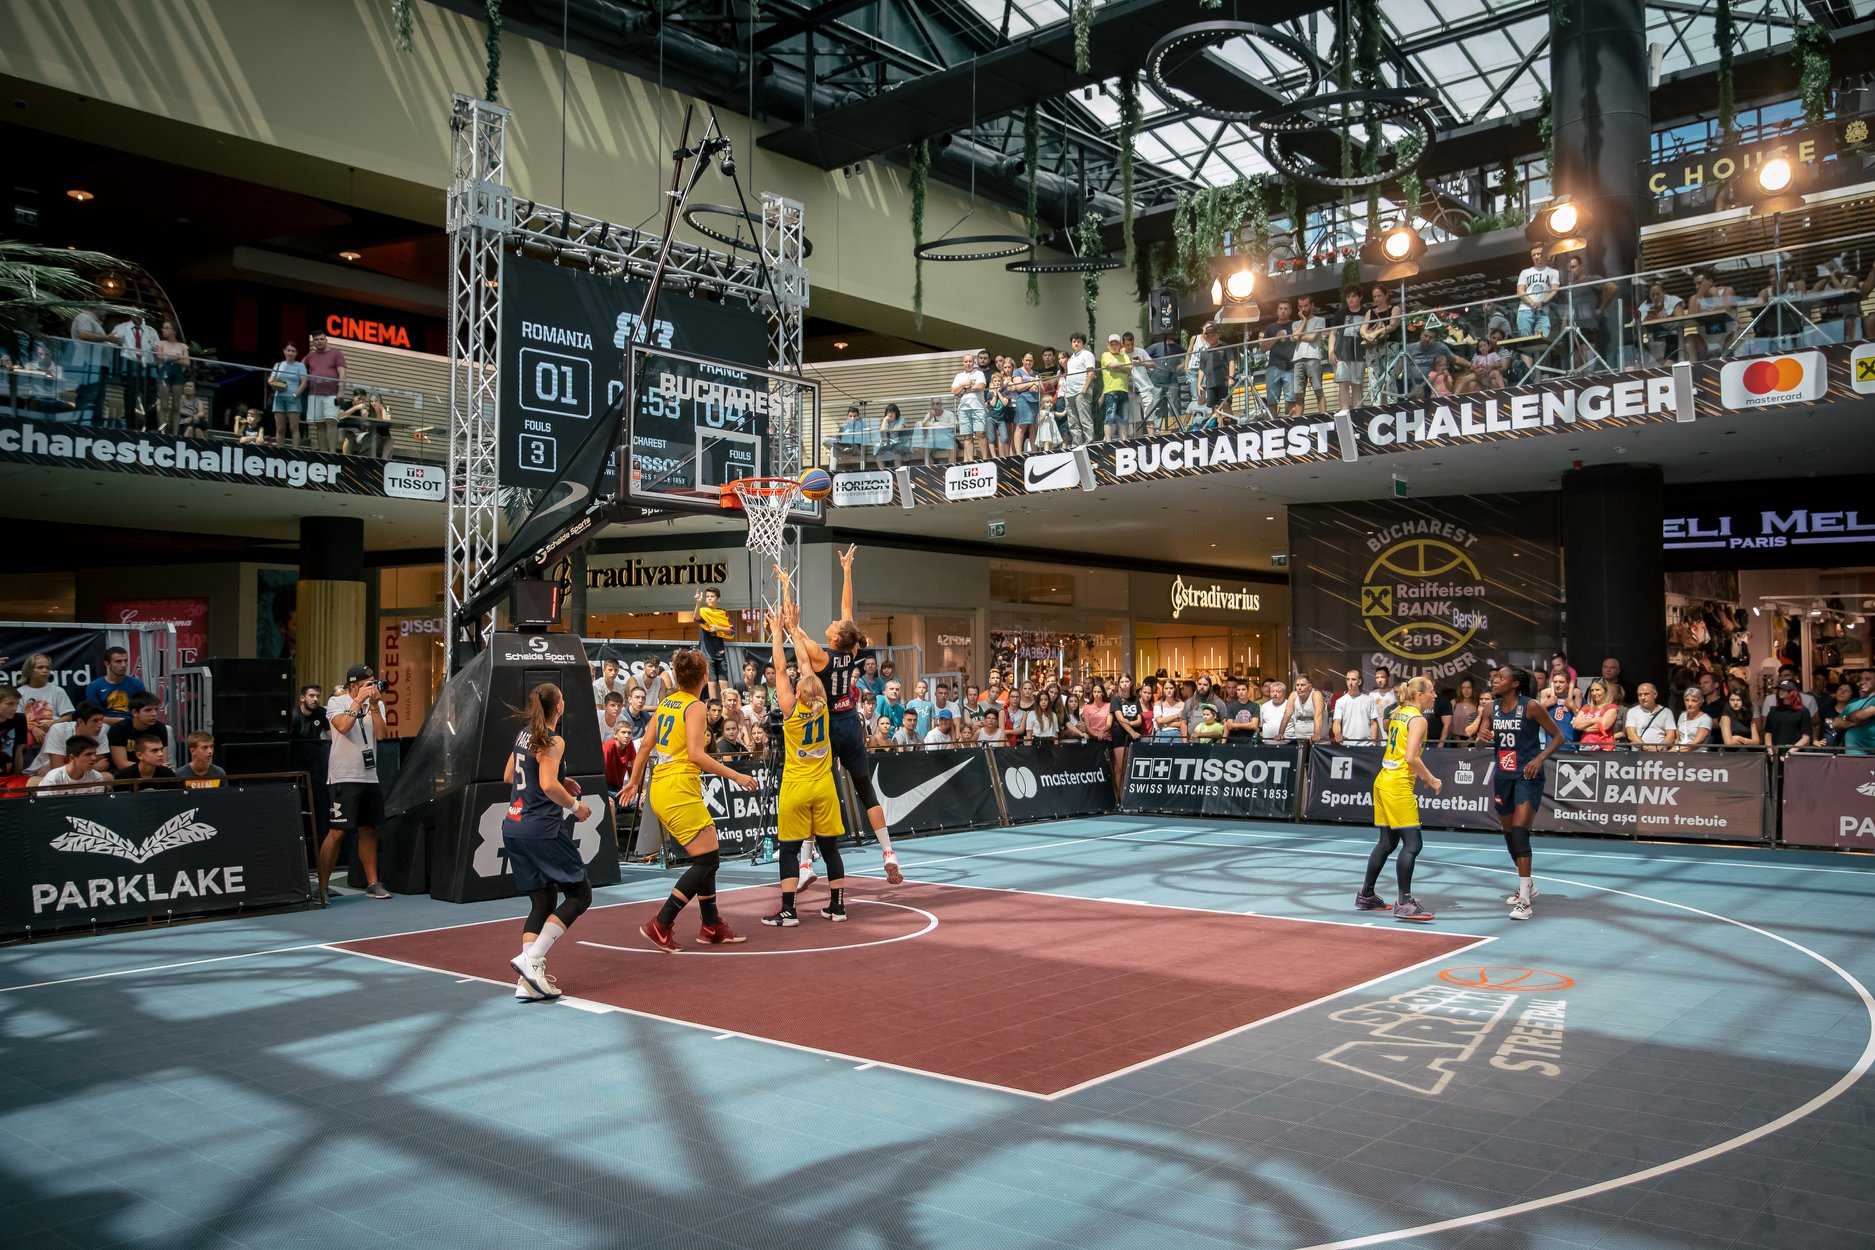 Sport Arena 3x3 Raiffeisen Bank Bucharest Challenger August 2019 @ Park Lake Setup Sunet Lumini Music Gear 11